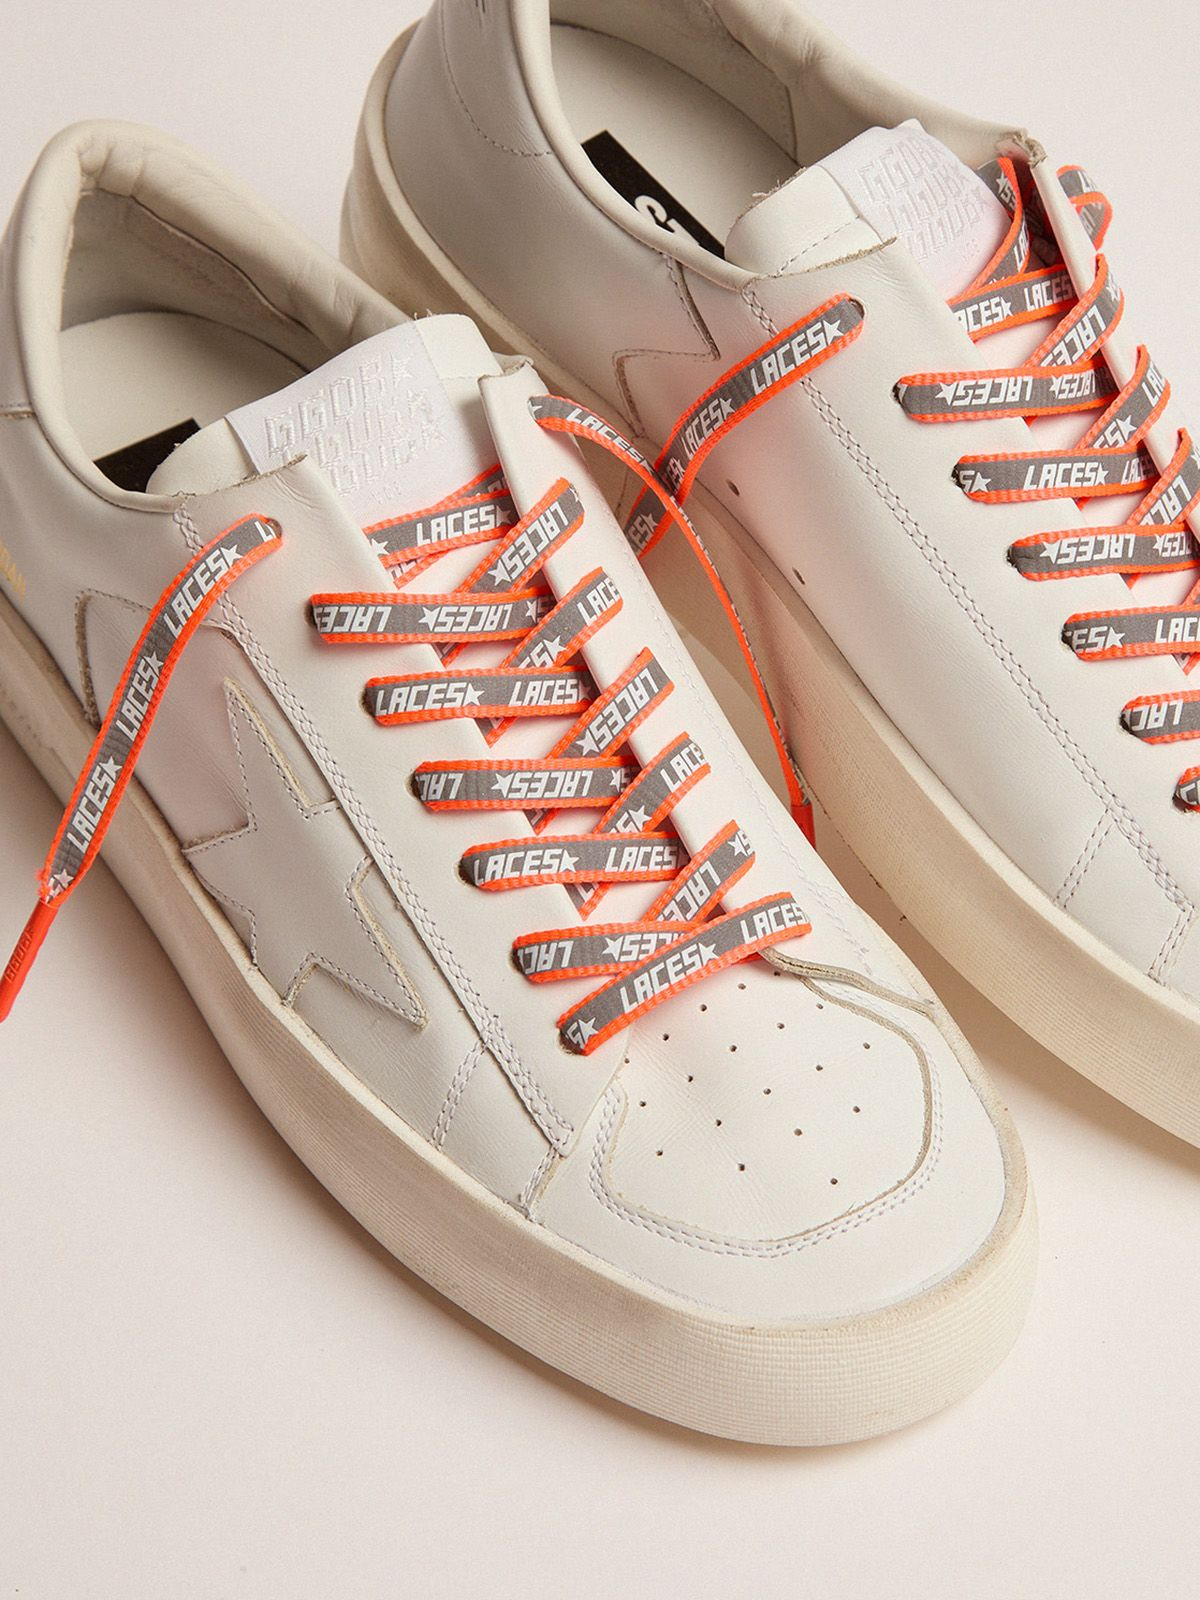 Golden Goose - Men's neon orange reflective laces with laces print in